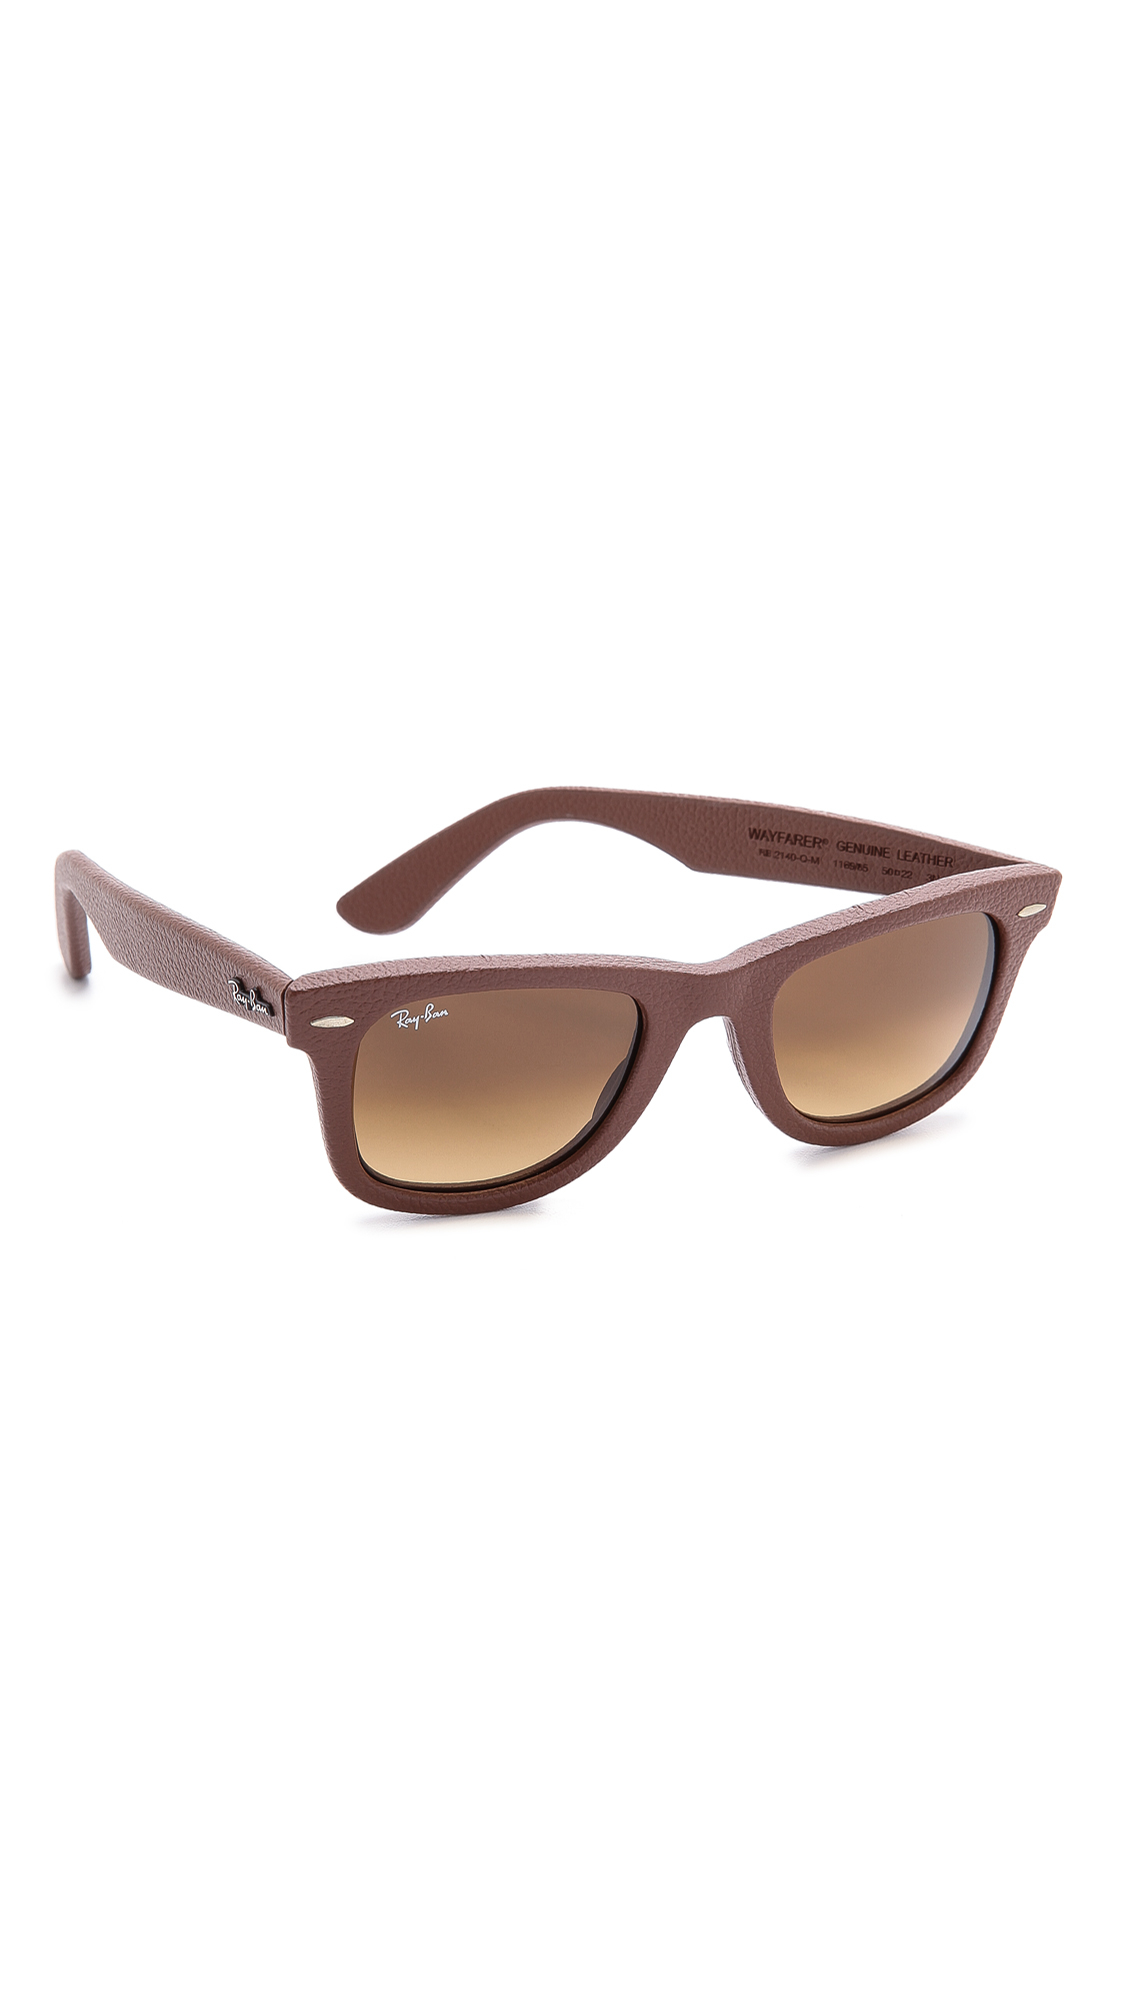 f0d89cdd7a5 Gallery. Previously sold at  East Dane · Men s Wayfarer Sunglasses Women s  Orange Sunglases Men s Ray Ban ...